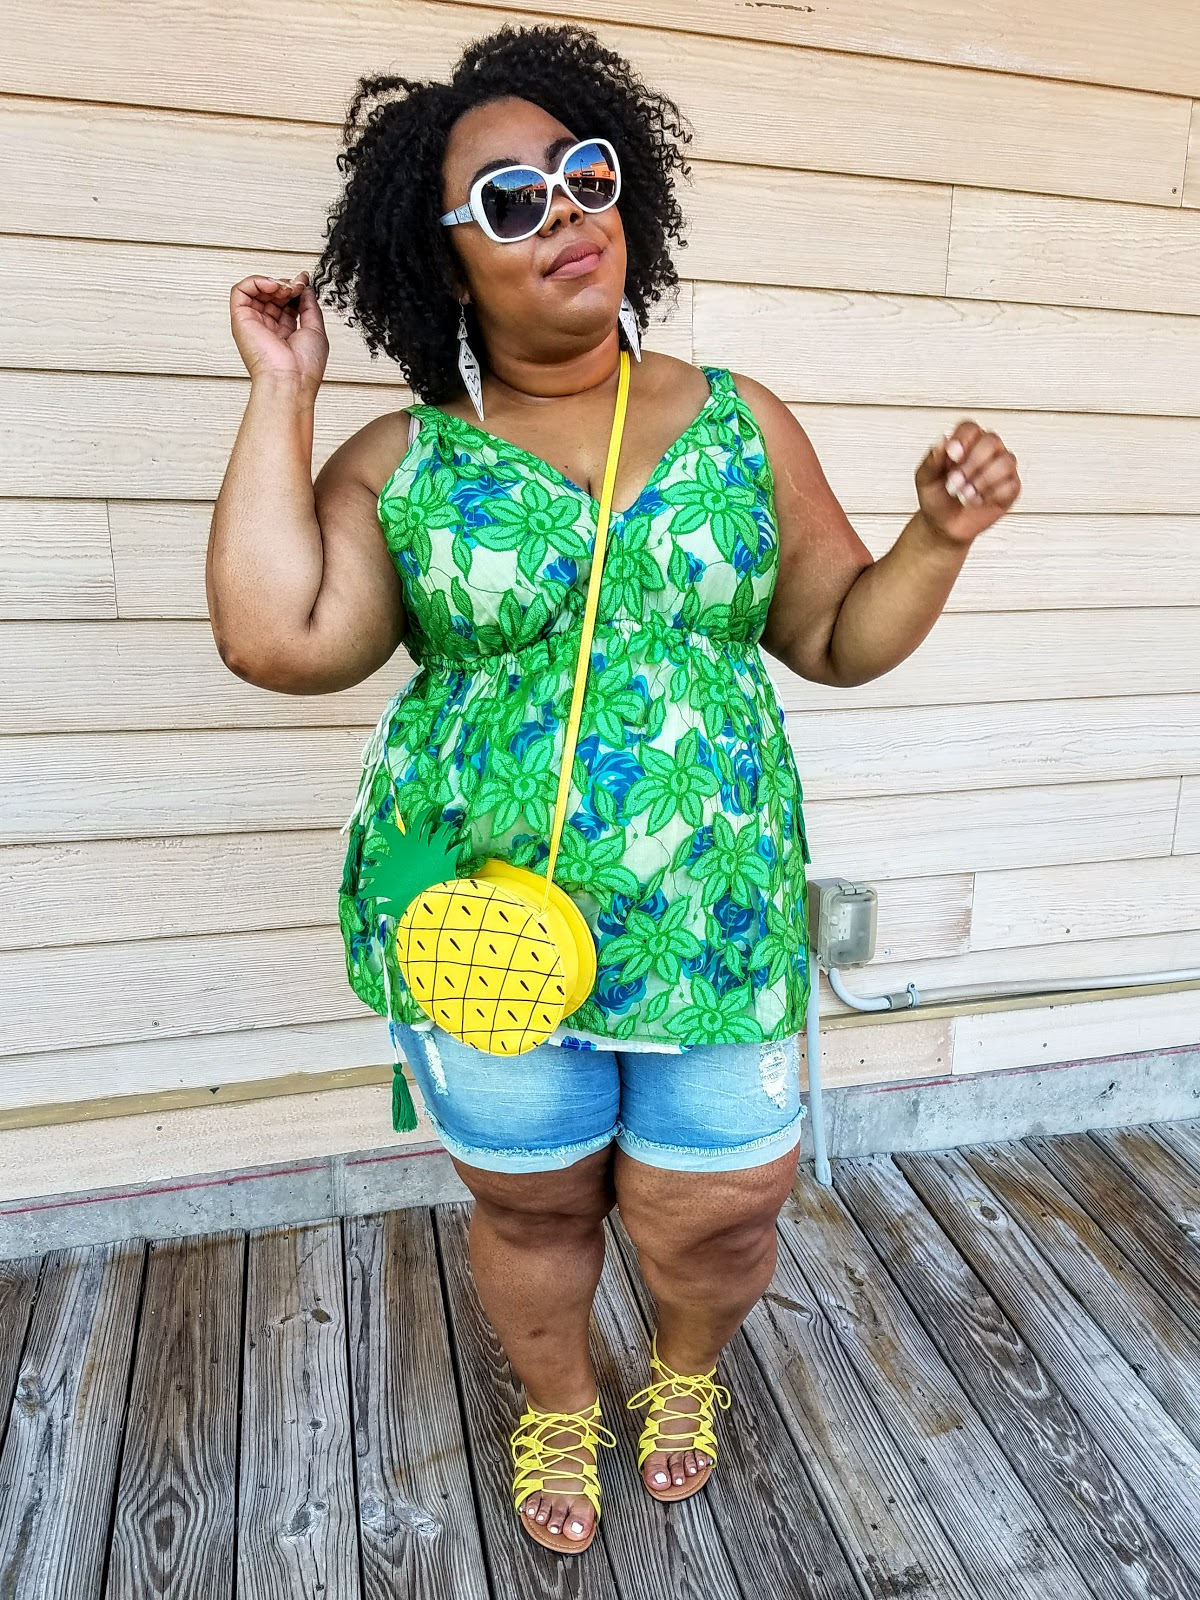 plus size, blogger, florals, shorts, sandals, crossbody purse, natural hair, bold makeup, natural hair, fashion sunglasses, Myrtle Beach (Broadway at the Beach)